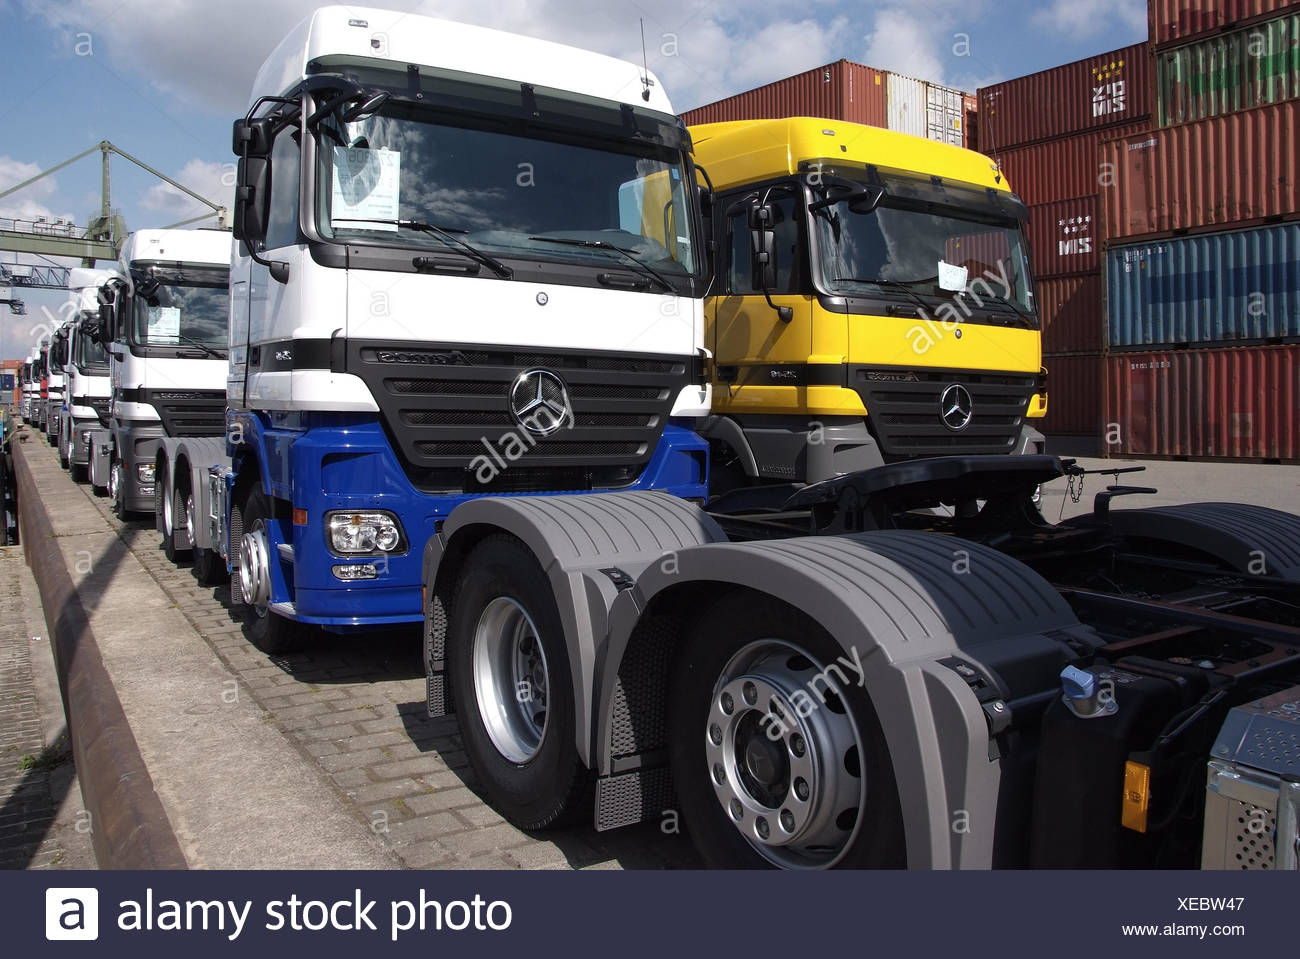 Inland harbour, navigation, truck loading, - Stock Image